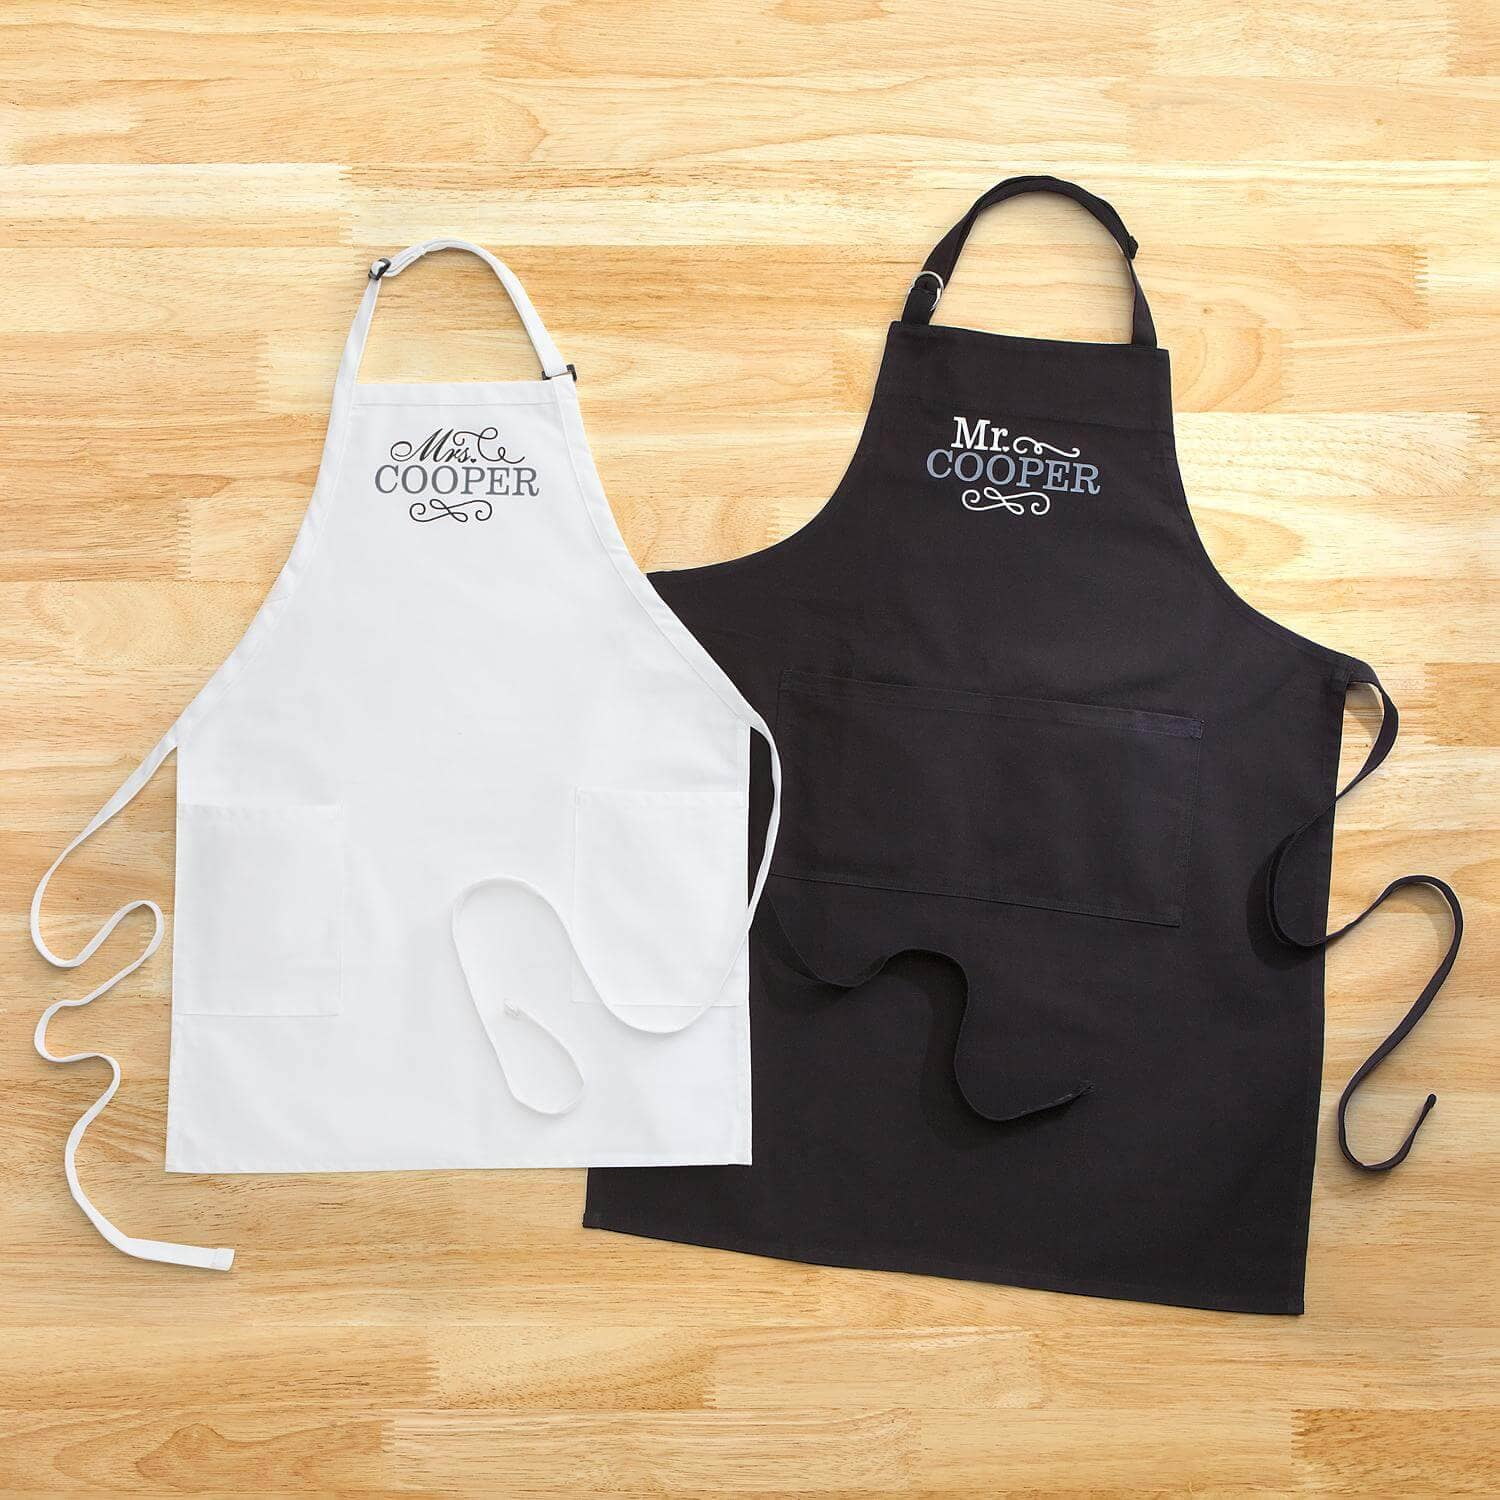 Mr. and Mrs. Personalized Apron Gift Set